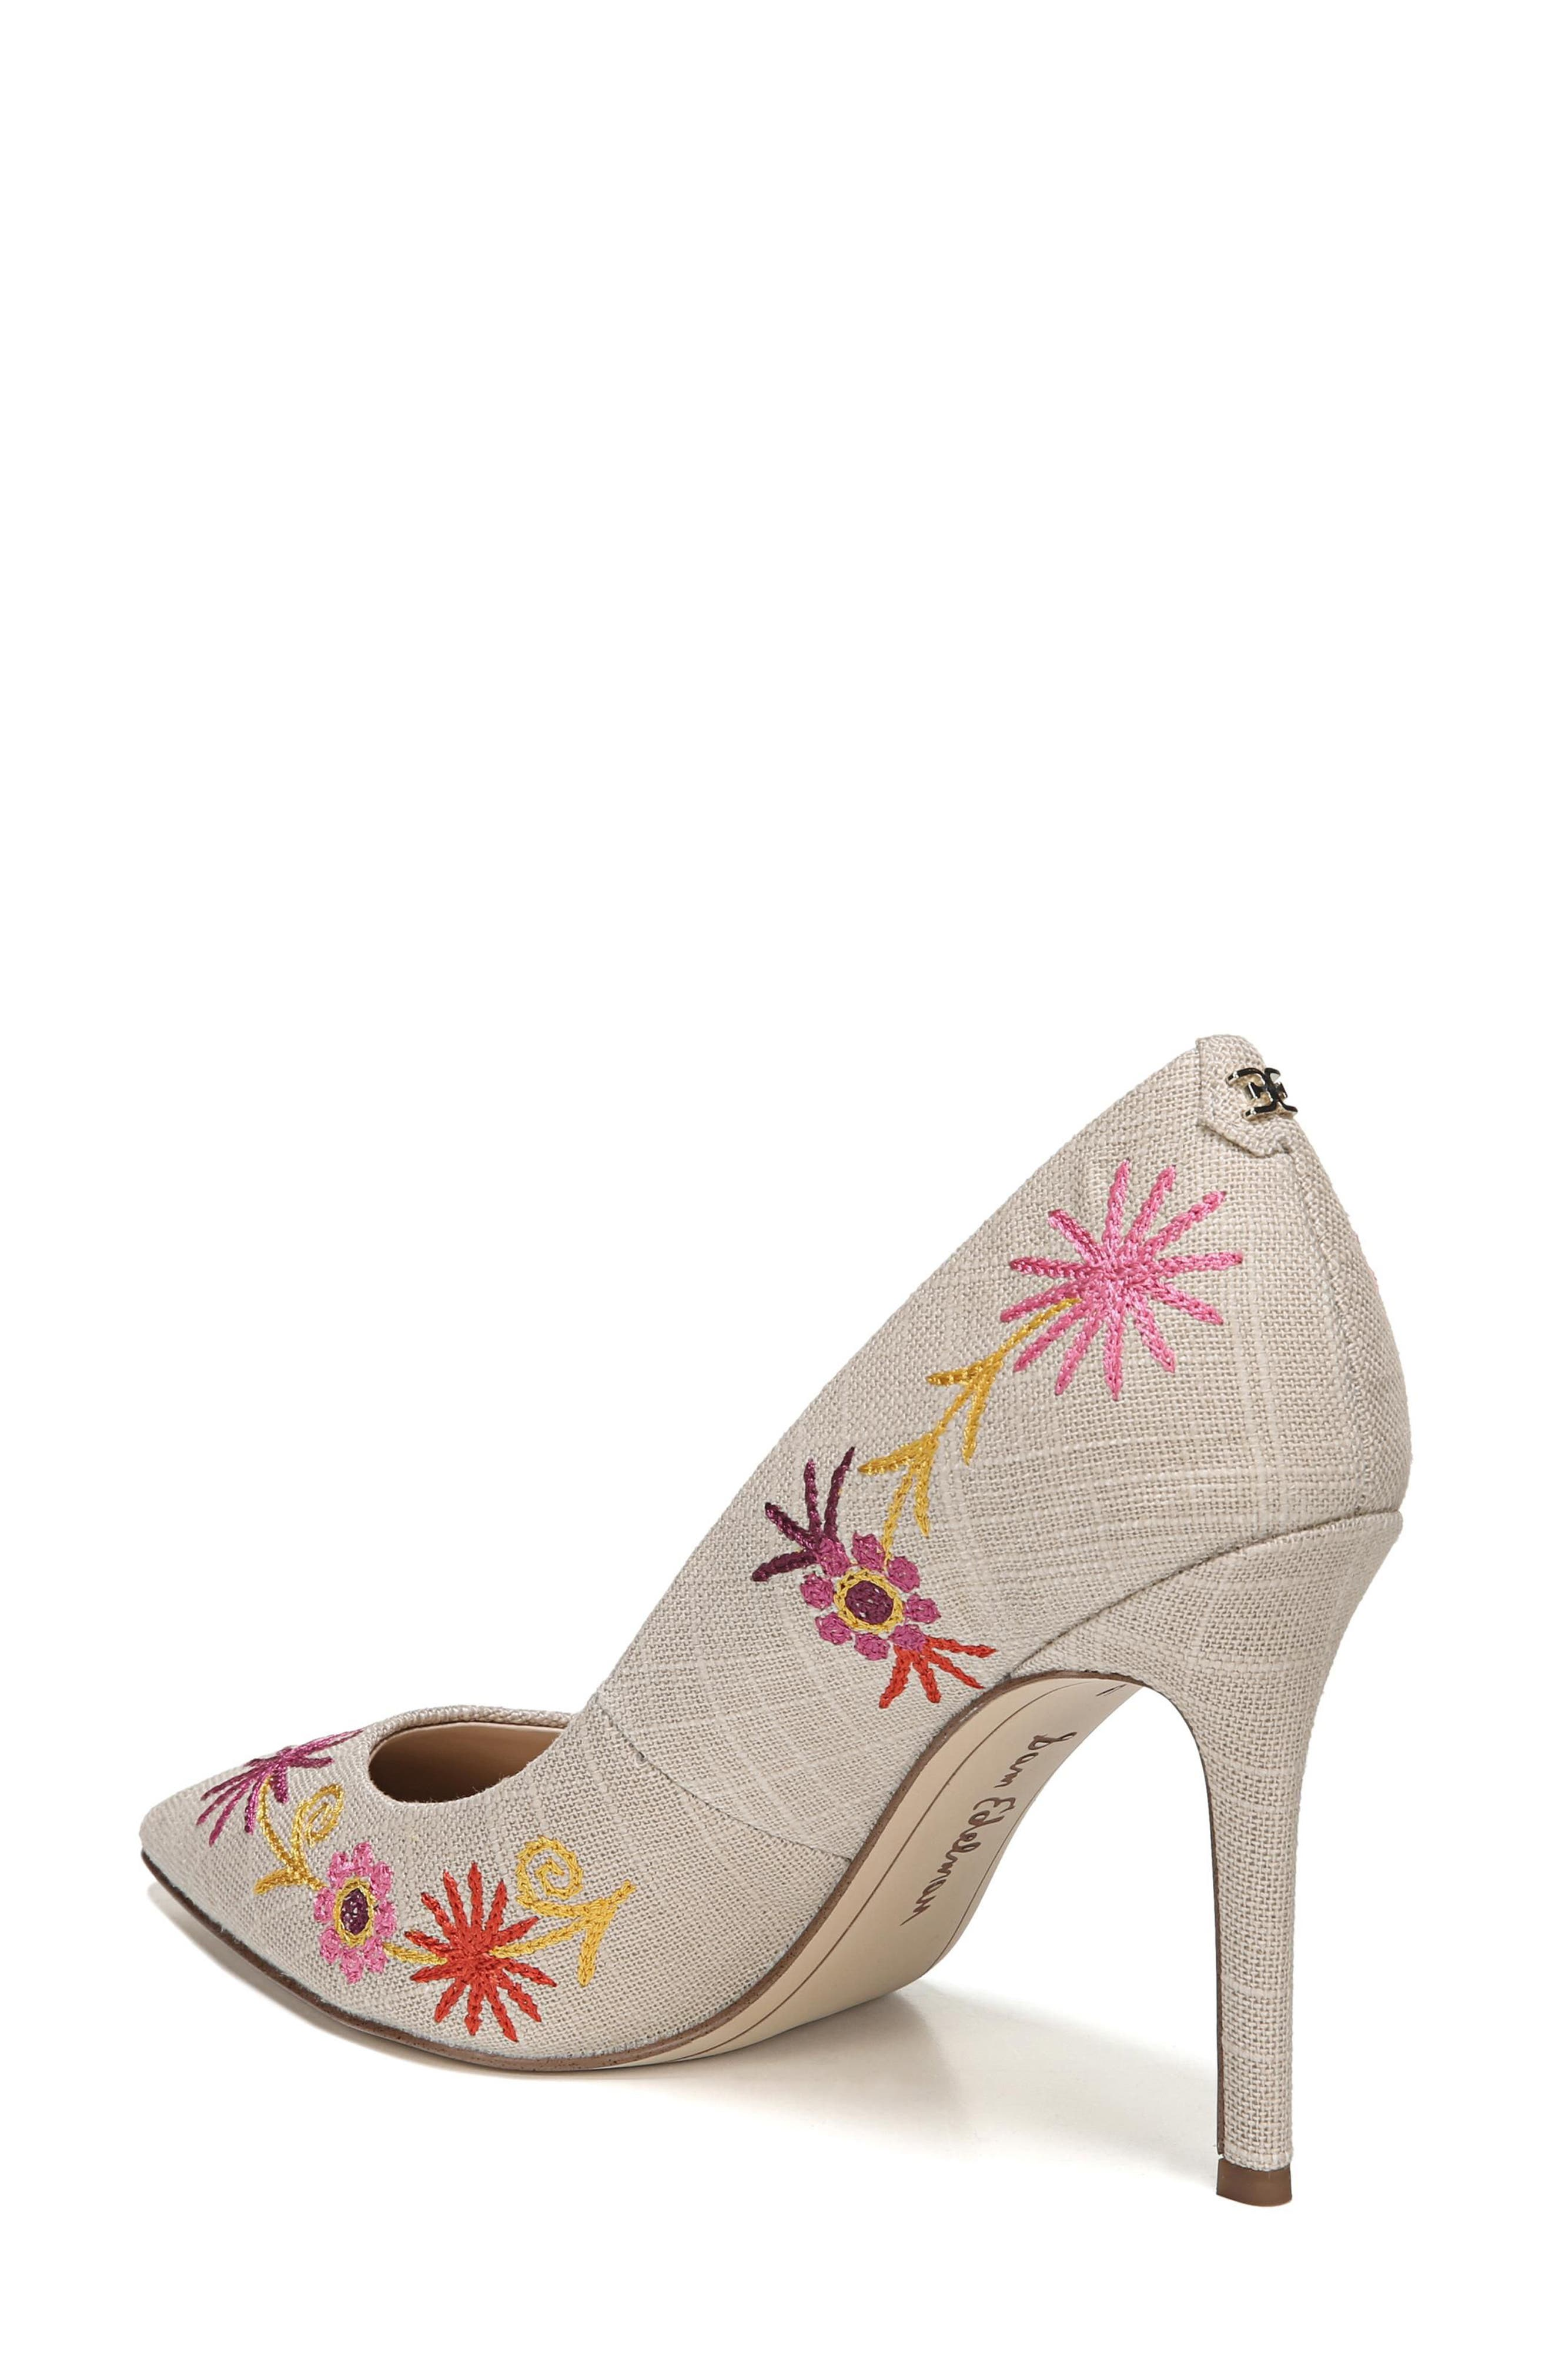 Hazel Pointy Toe Pump,                             Alternate thumbnail 2, color,                             Yellow Embroidery Suede